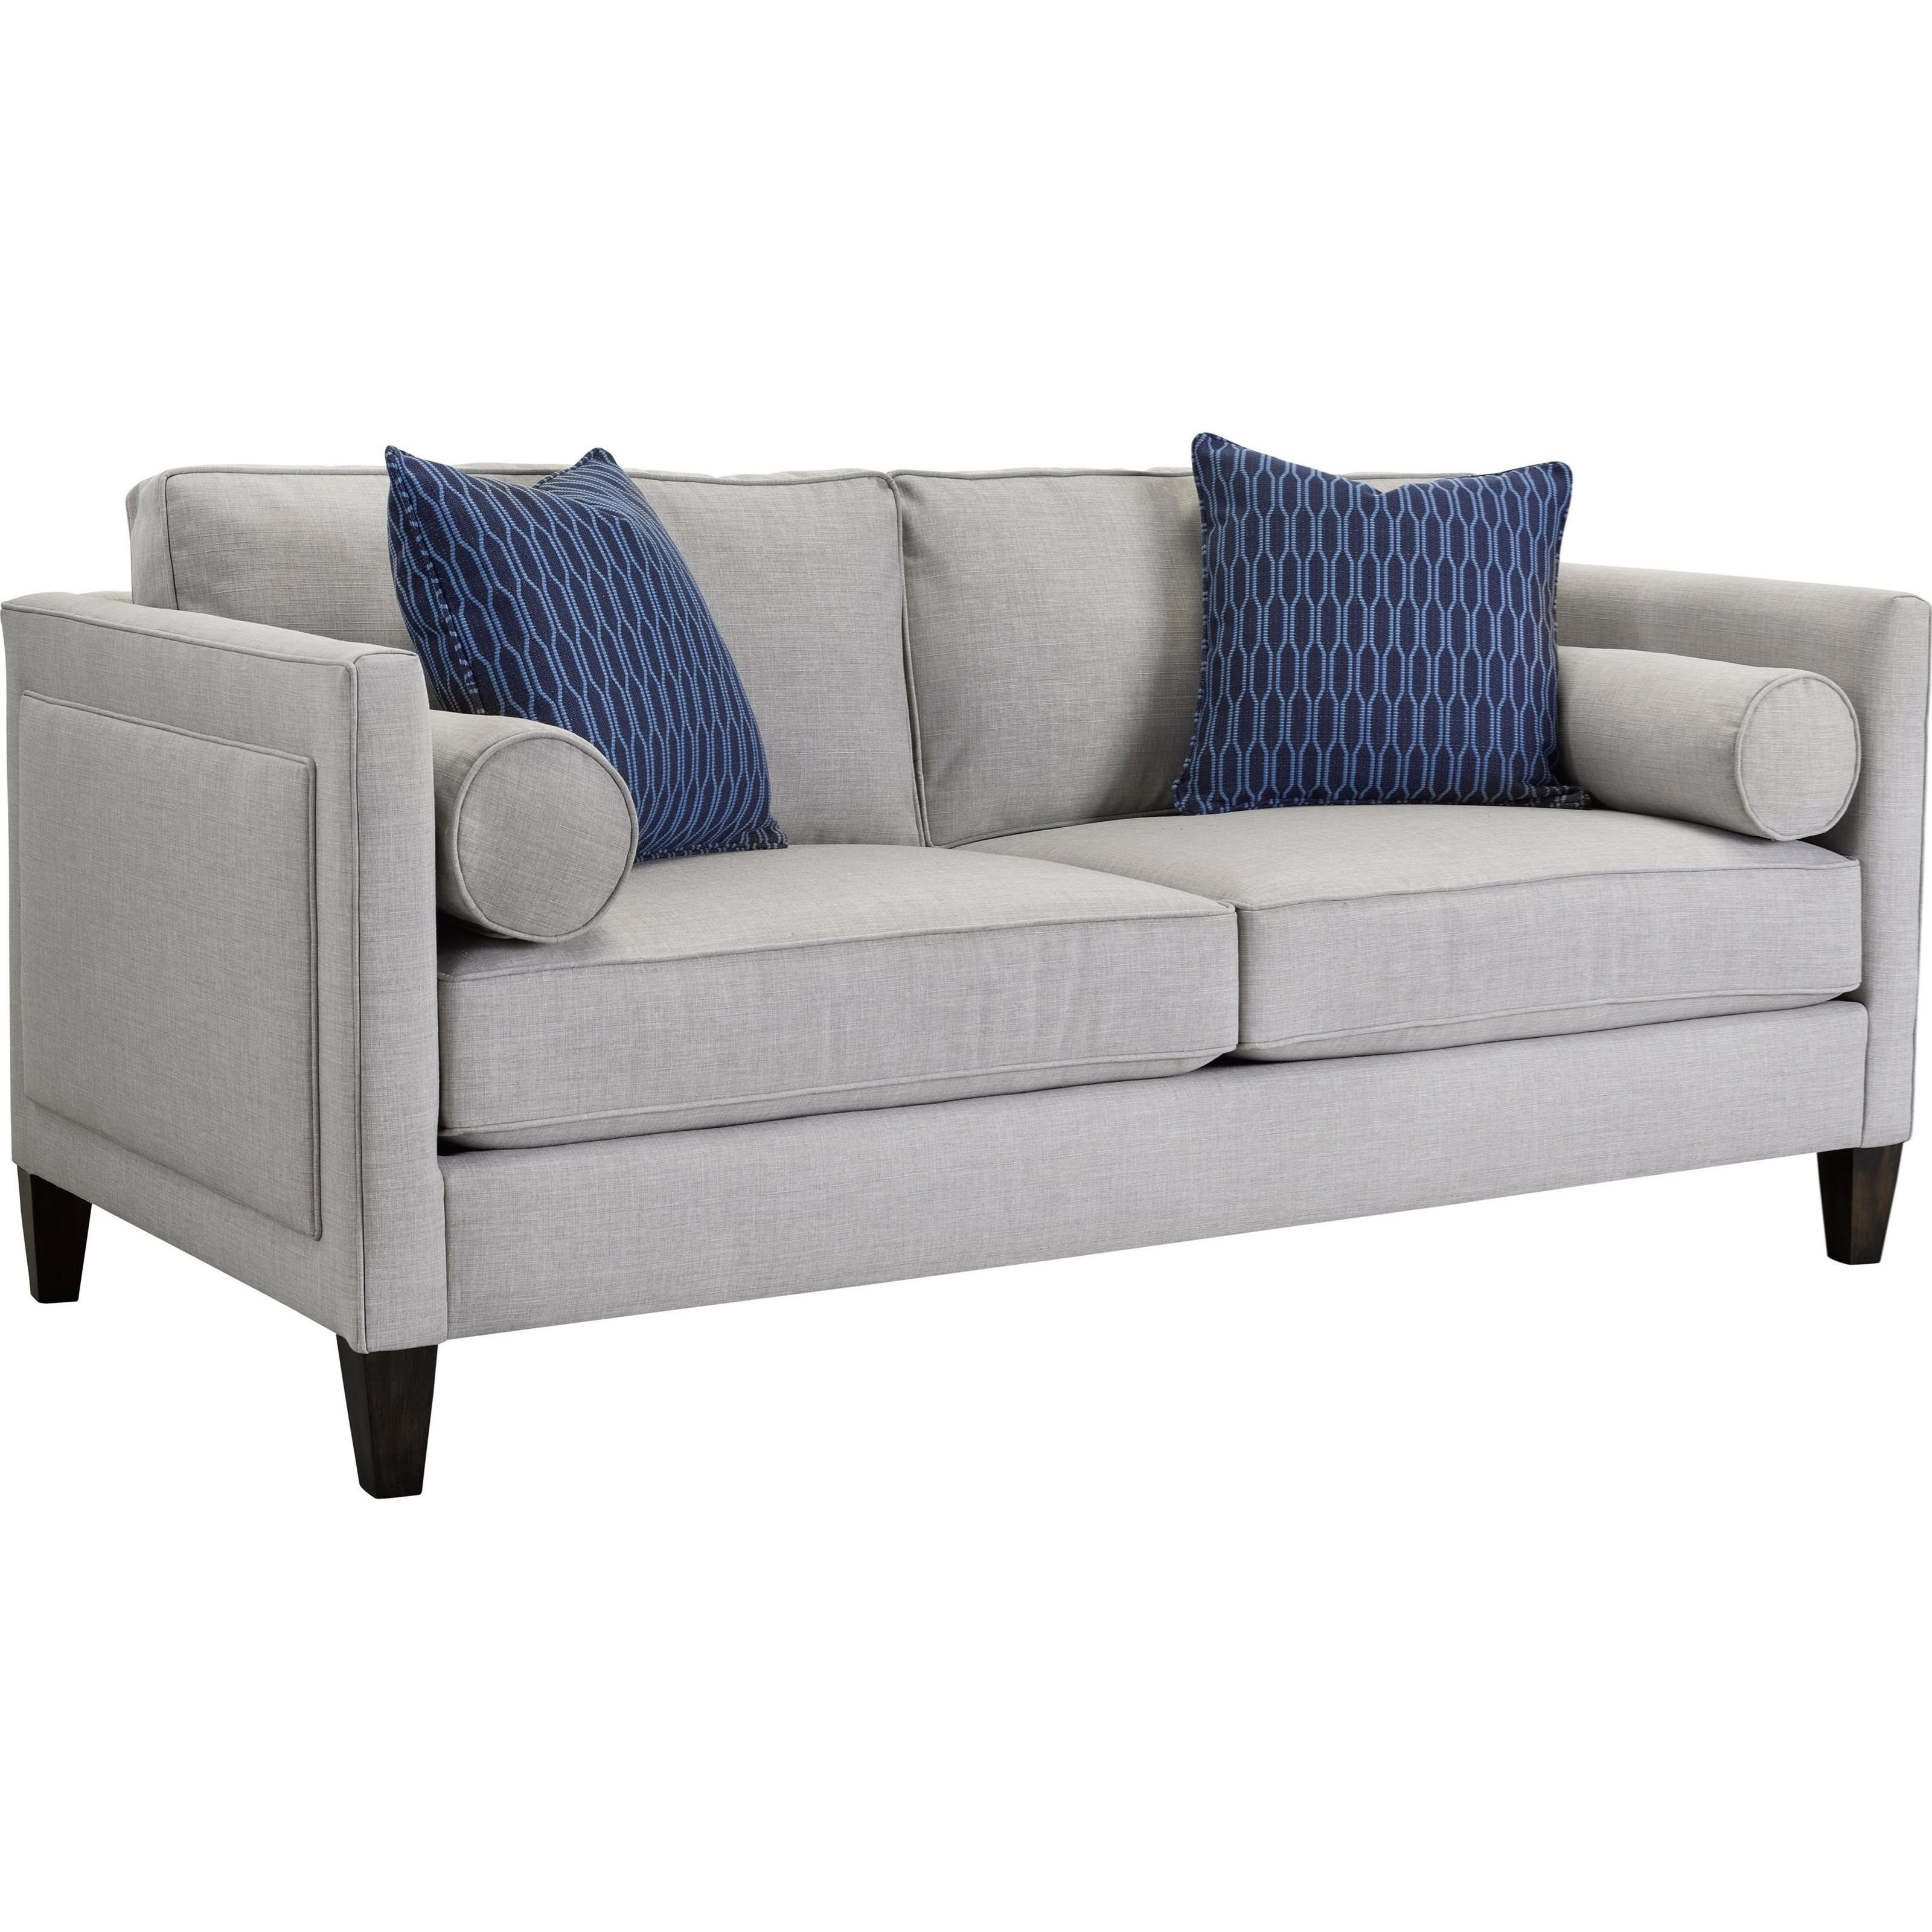 Apartment Sofa: Broyhill Furniture Veda Transitional Apartment Sofa With